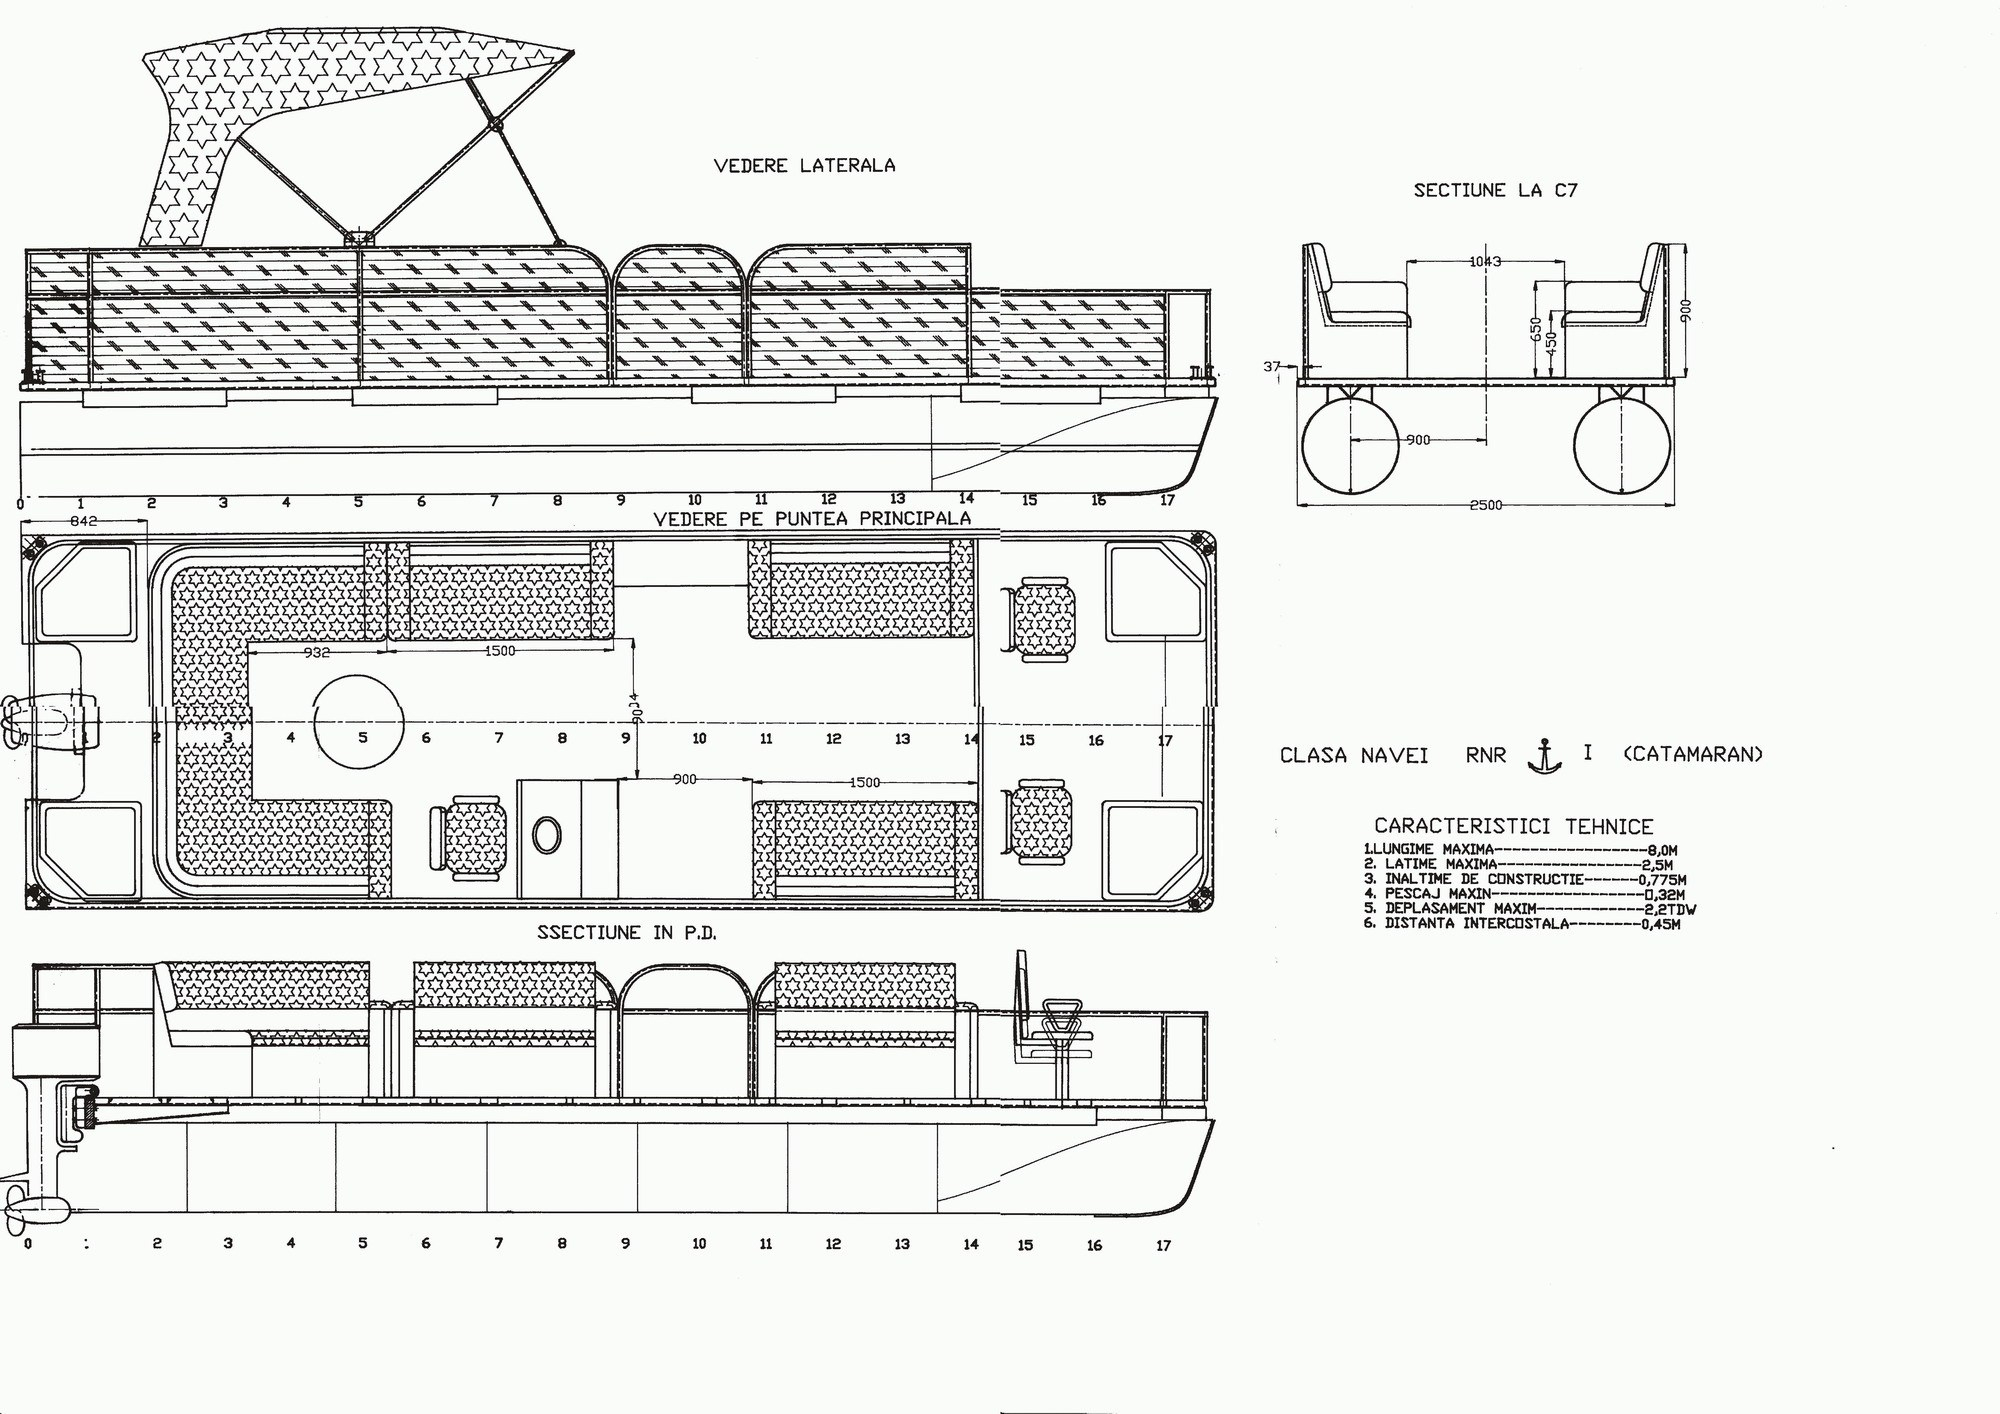 Boat Schematics | Wiring Diagram - Pontoon Boat Wiring Diagram